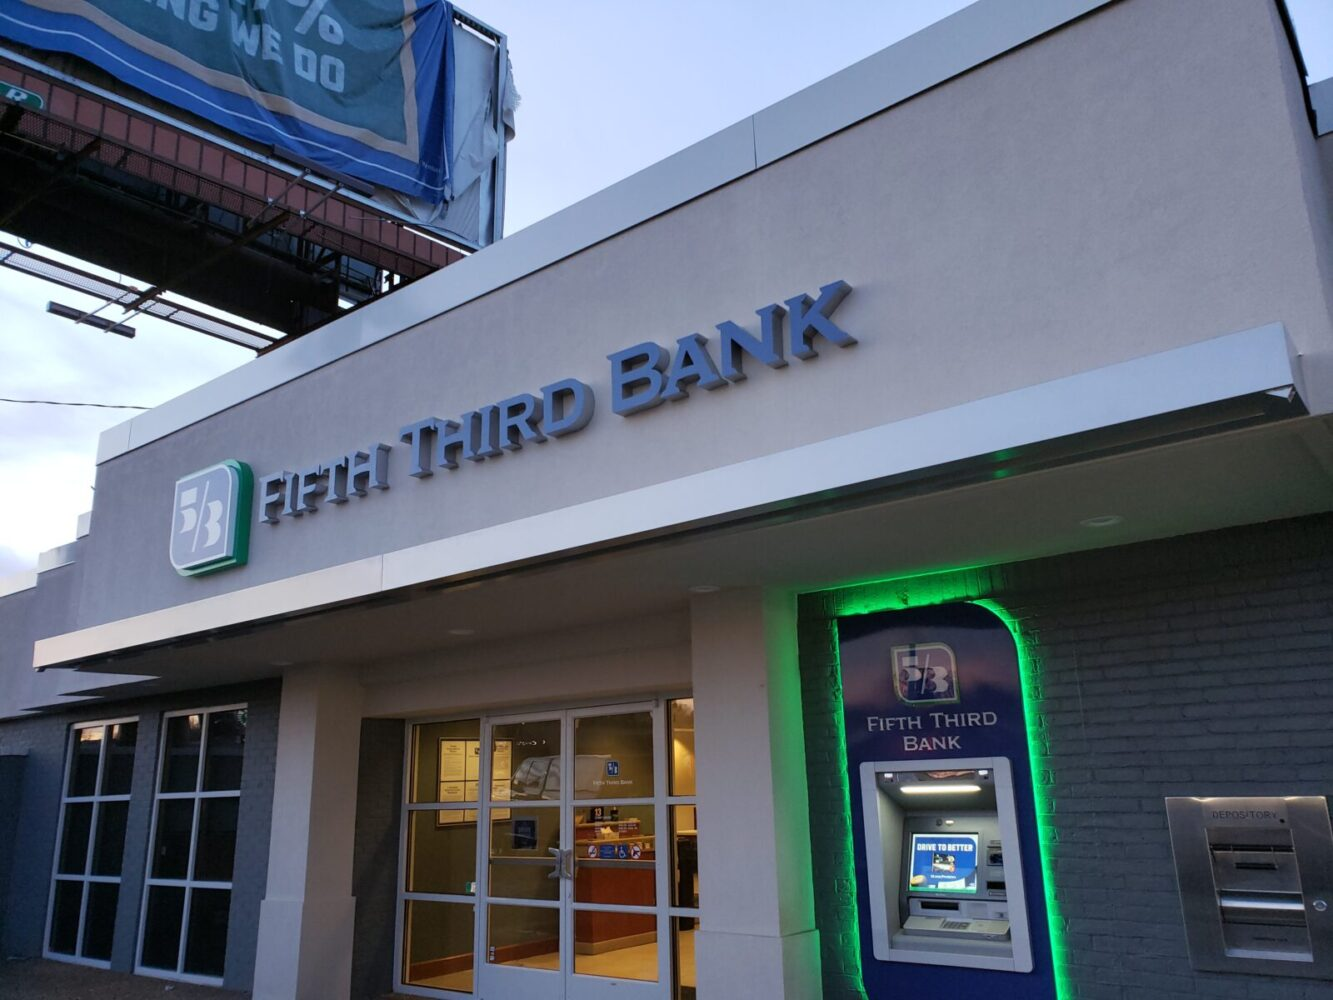 Architectural Canopy | Fifth Third Bank